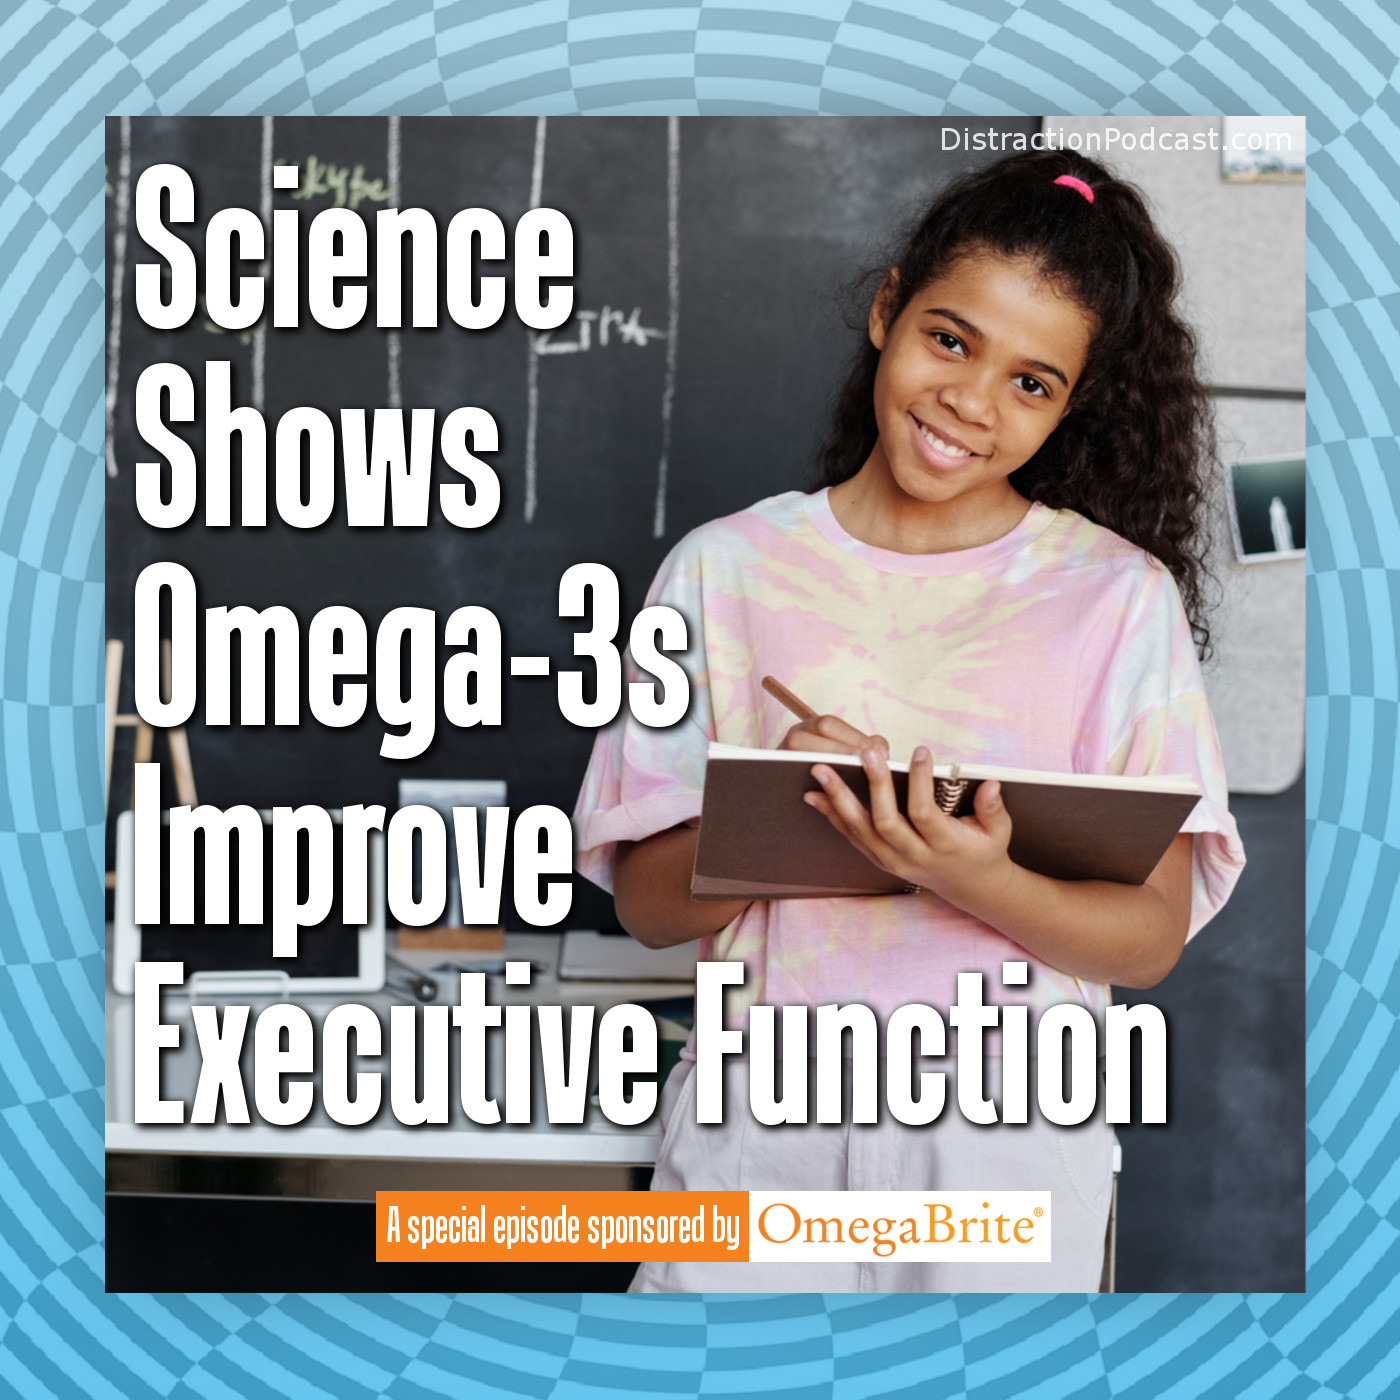 Science Shows Omega-3s Improve Executive Function with OmegaBrite Wellness